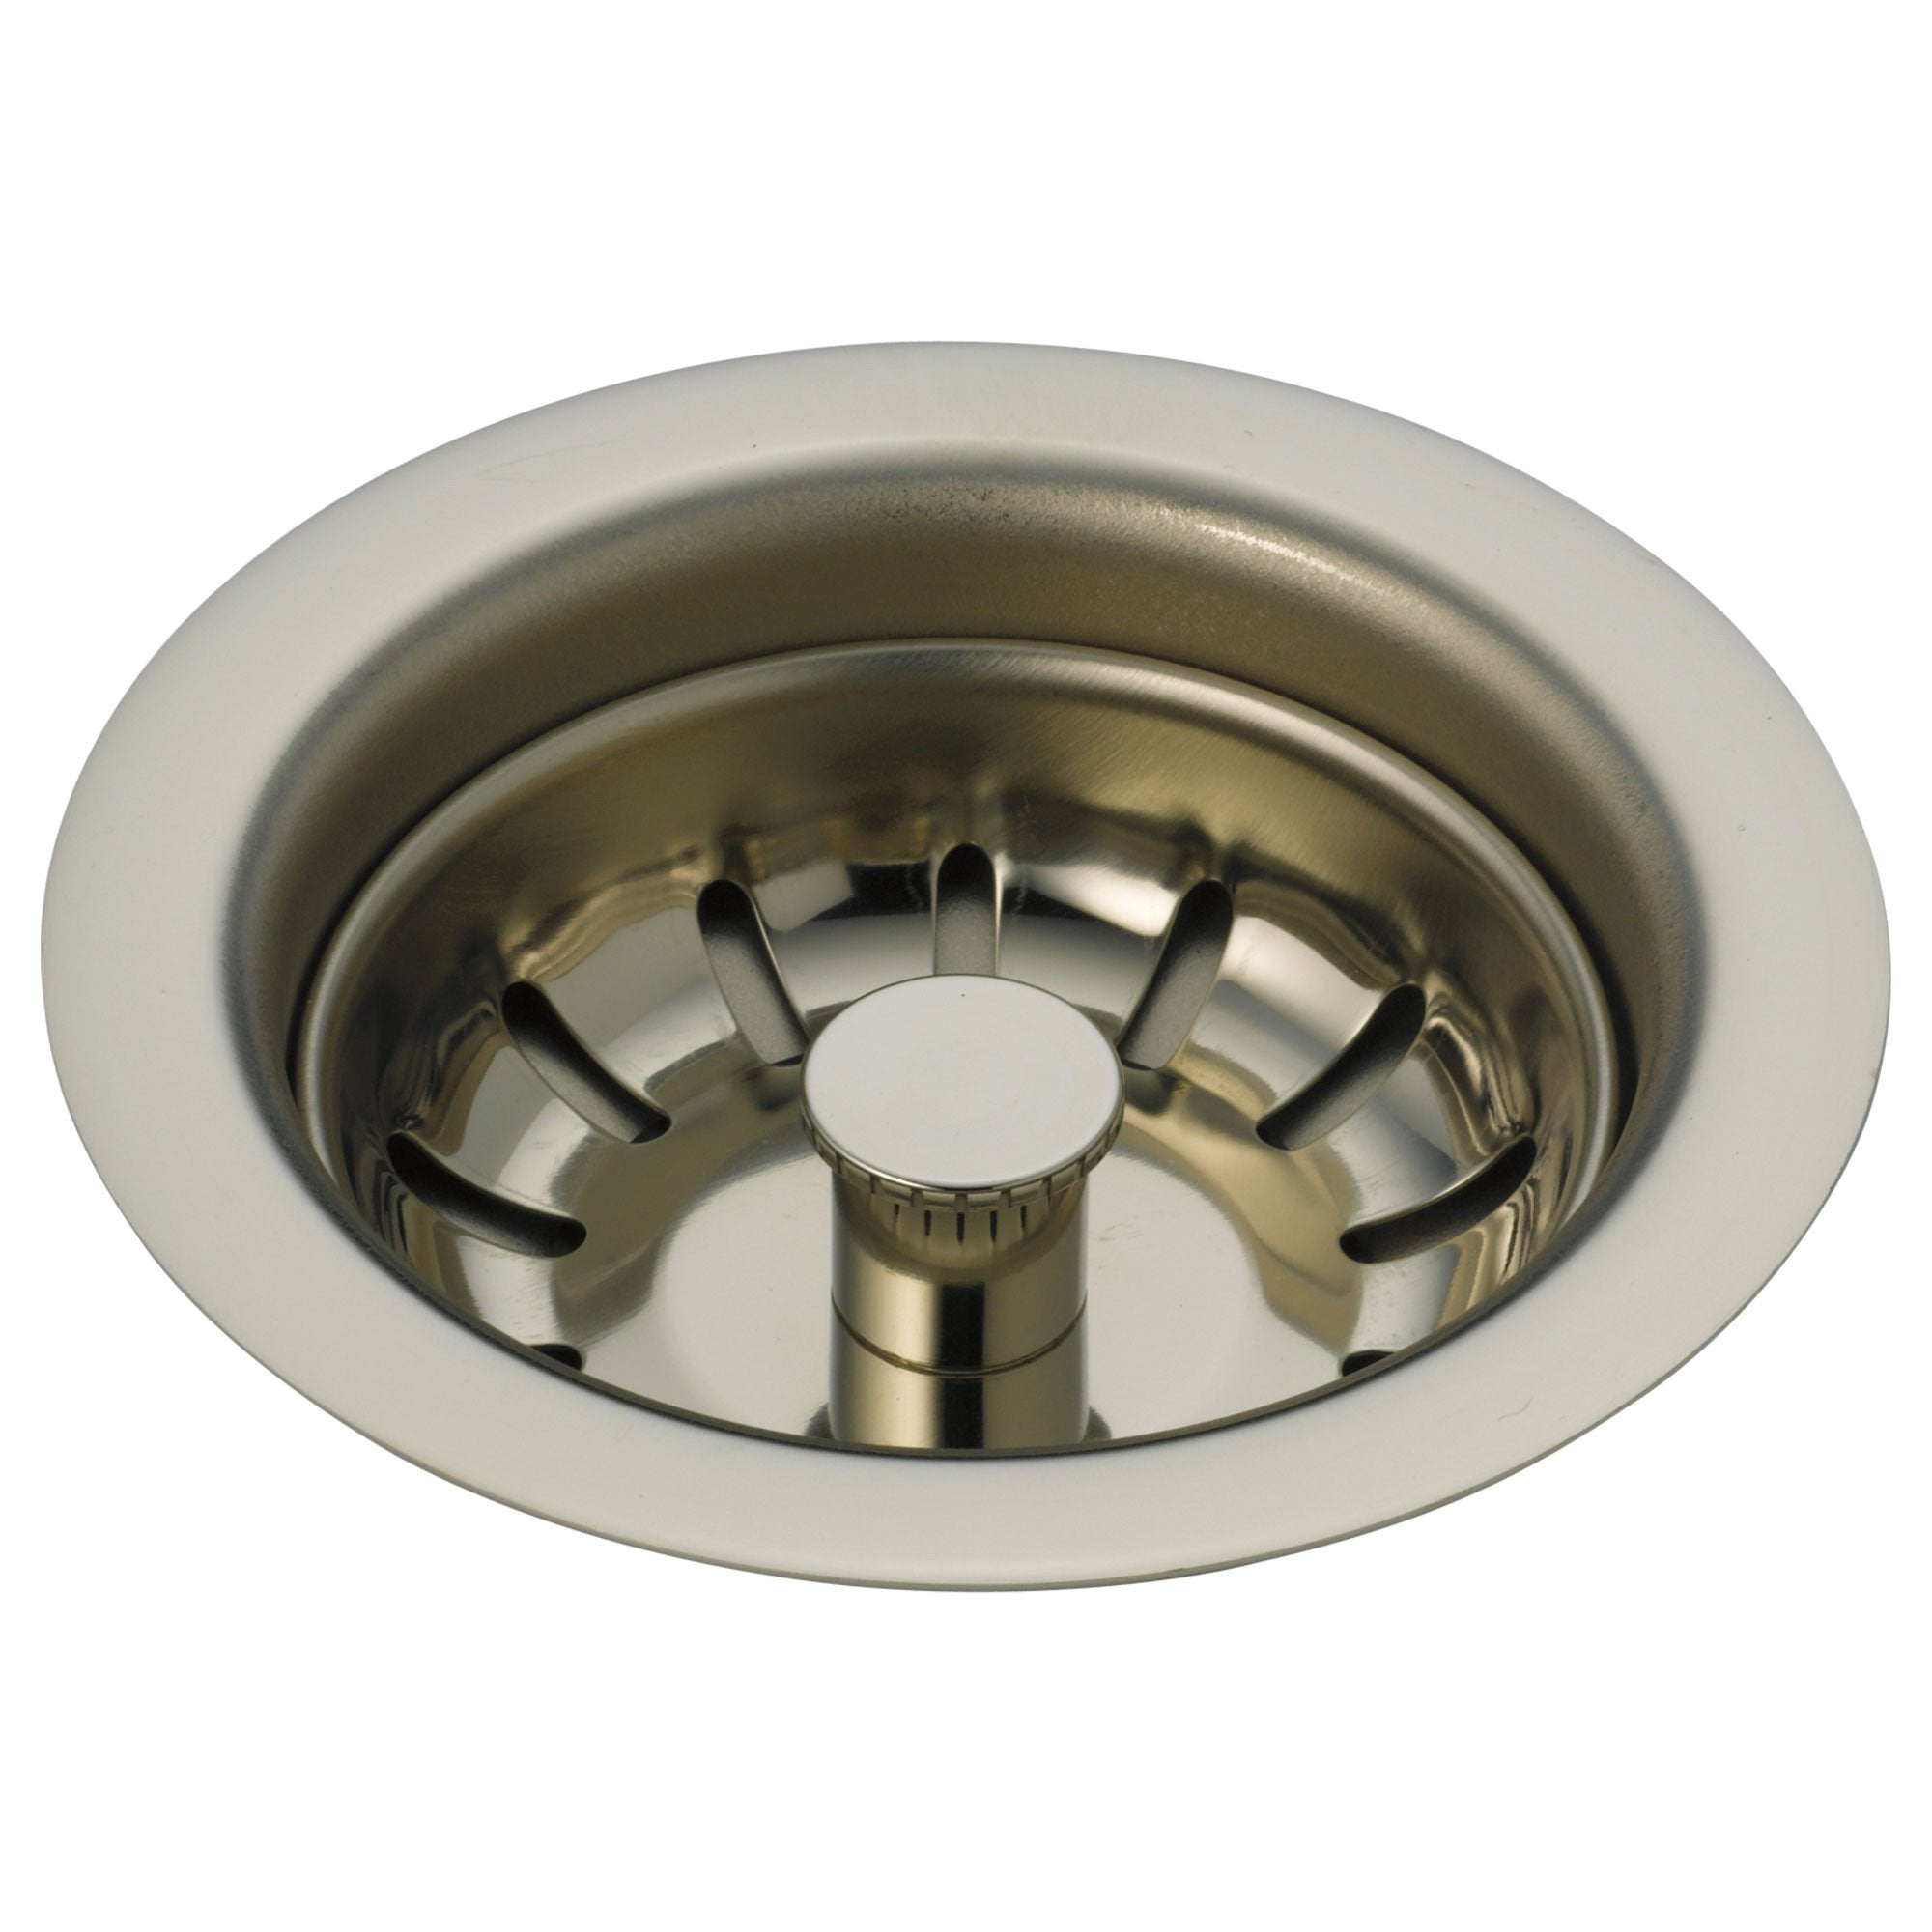 Sink Components Accessories And Parts For Kitchen And